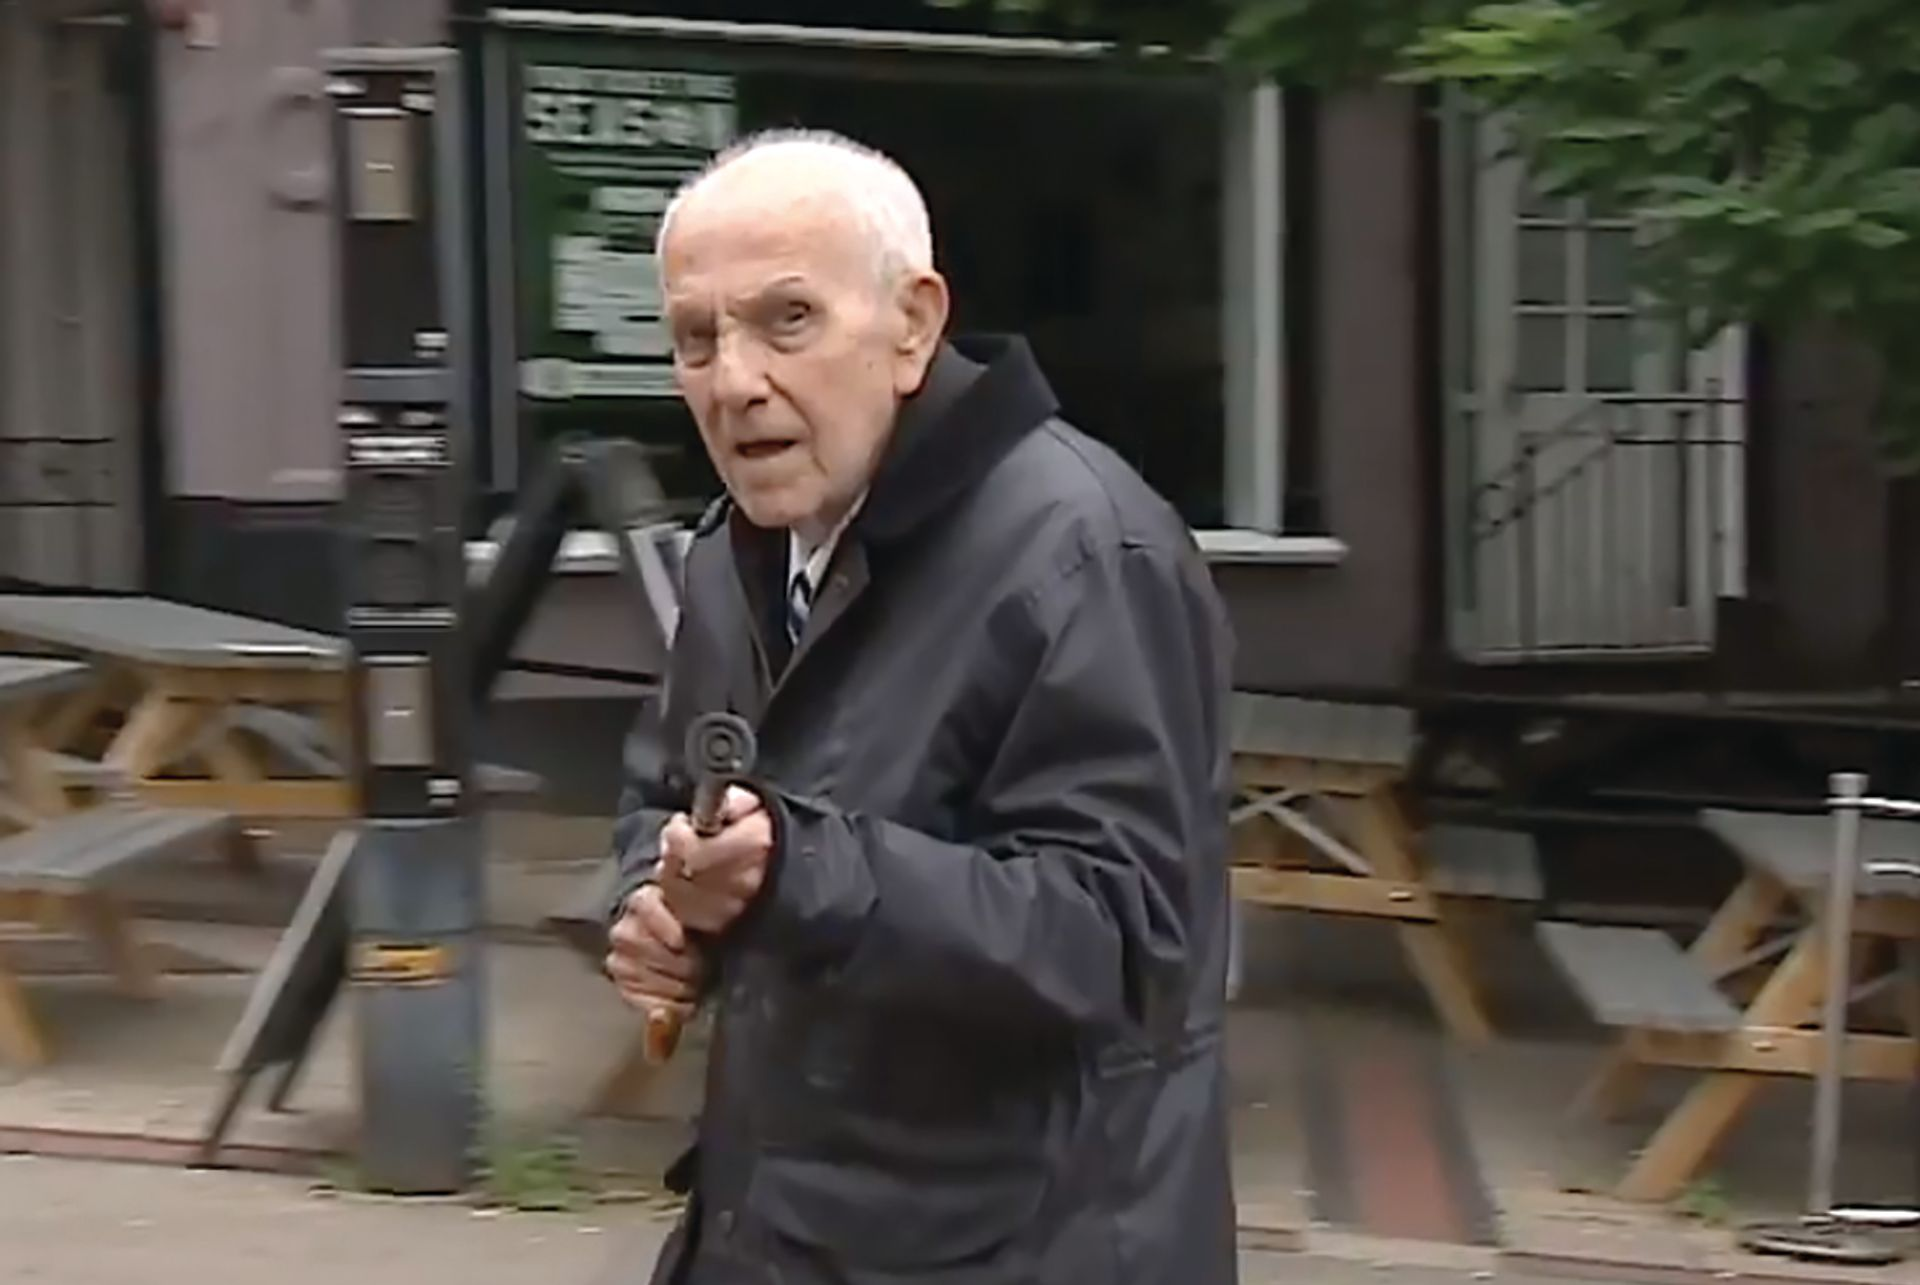 Des Pickersgill on his way to court in Luton this summer, where he was given a six-year sentence for his part in the theft of valuables from an elderly women. Photo: Itv News